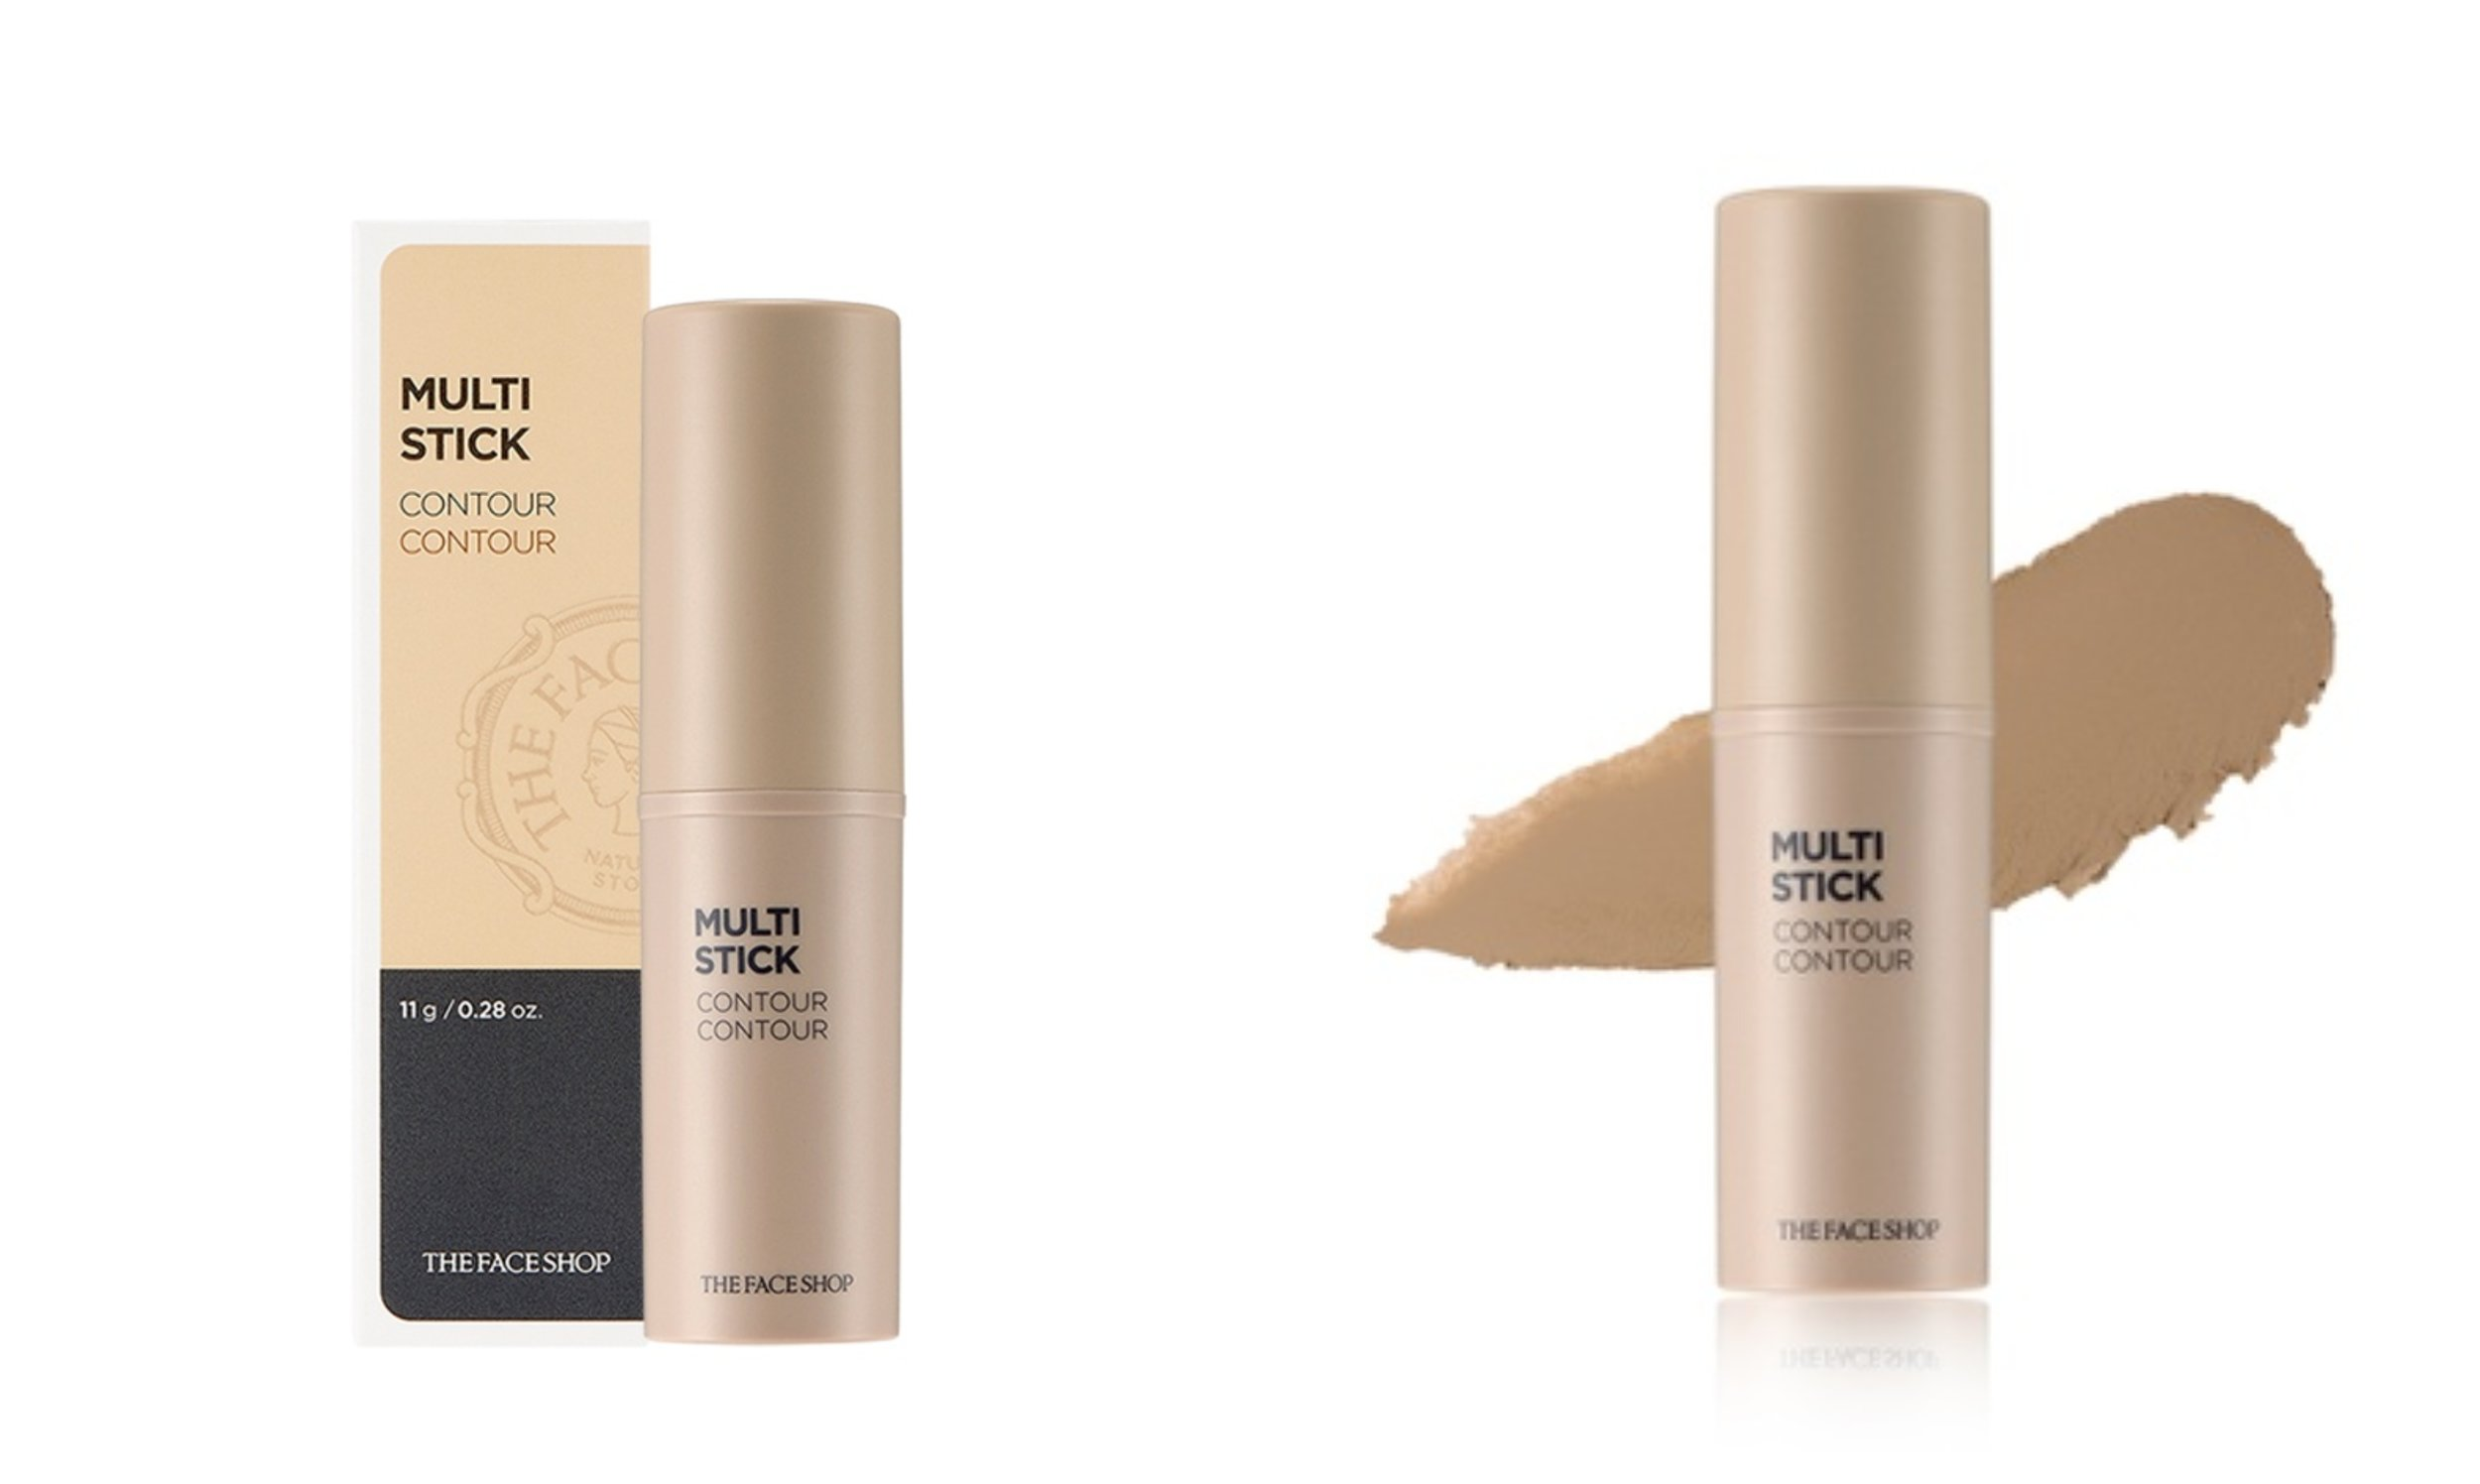 THE FACE SHOP Multi-Stick Contour